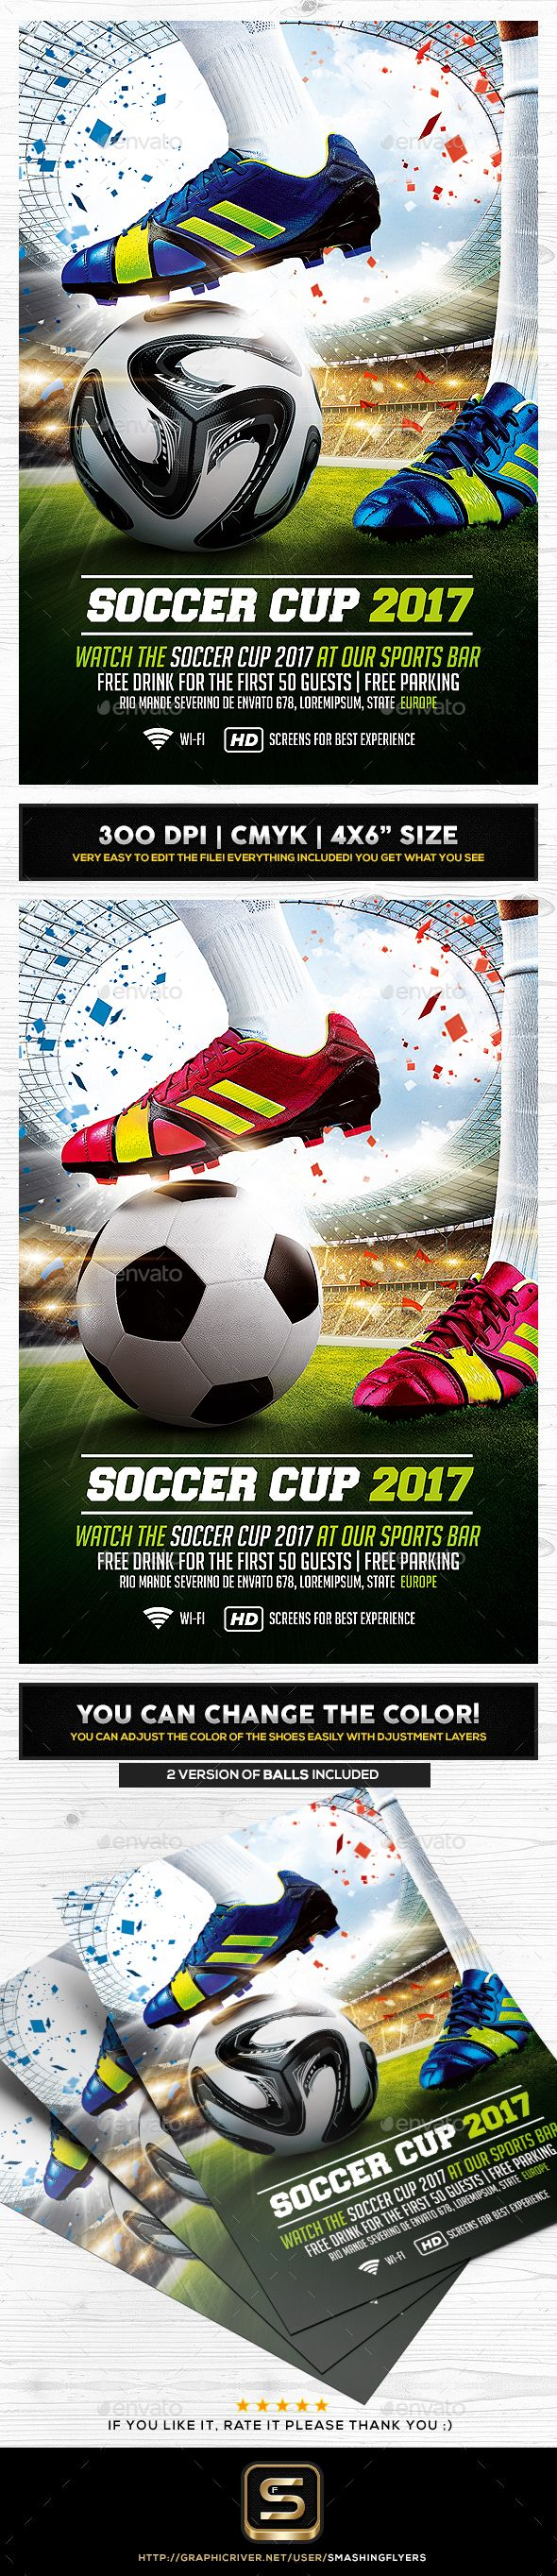 Soccer Cup Flyer Template — Photoshop PSD #football poster #sport bar • Available here → https://graphicriver.net/item/soccer-cup-flyer-template/19843352?ref=pxcr